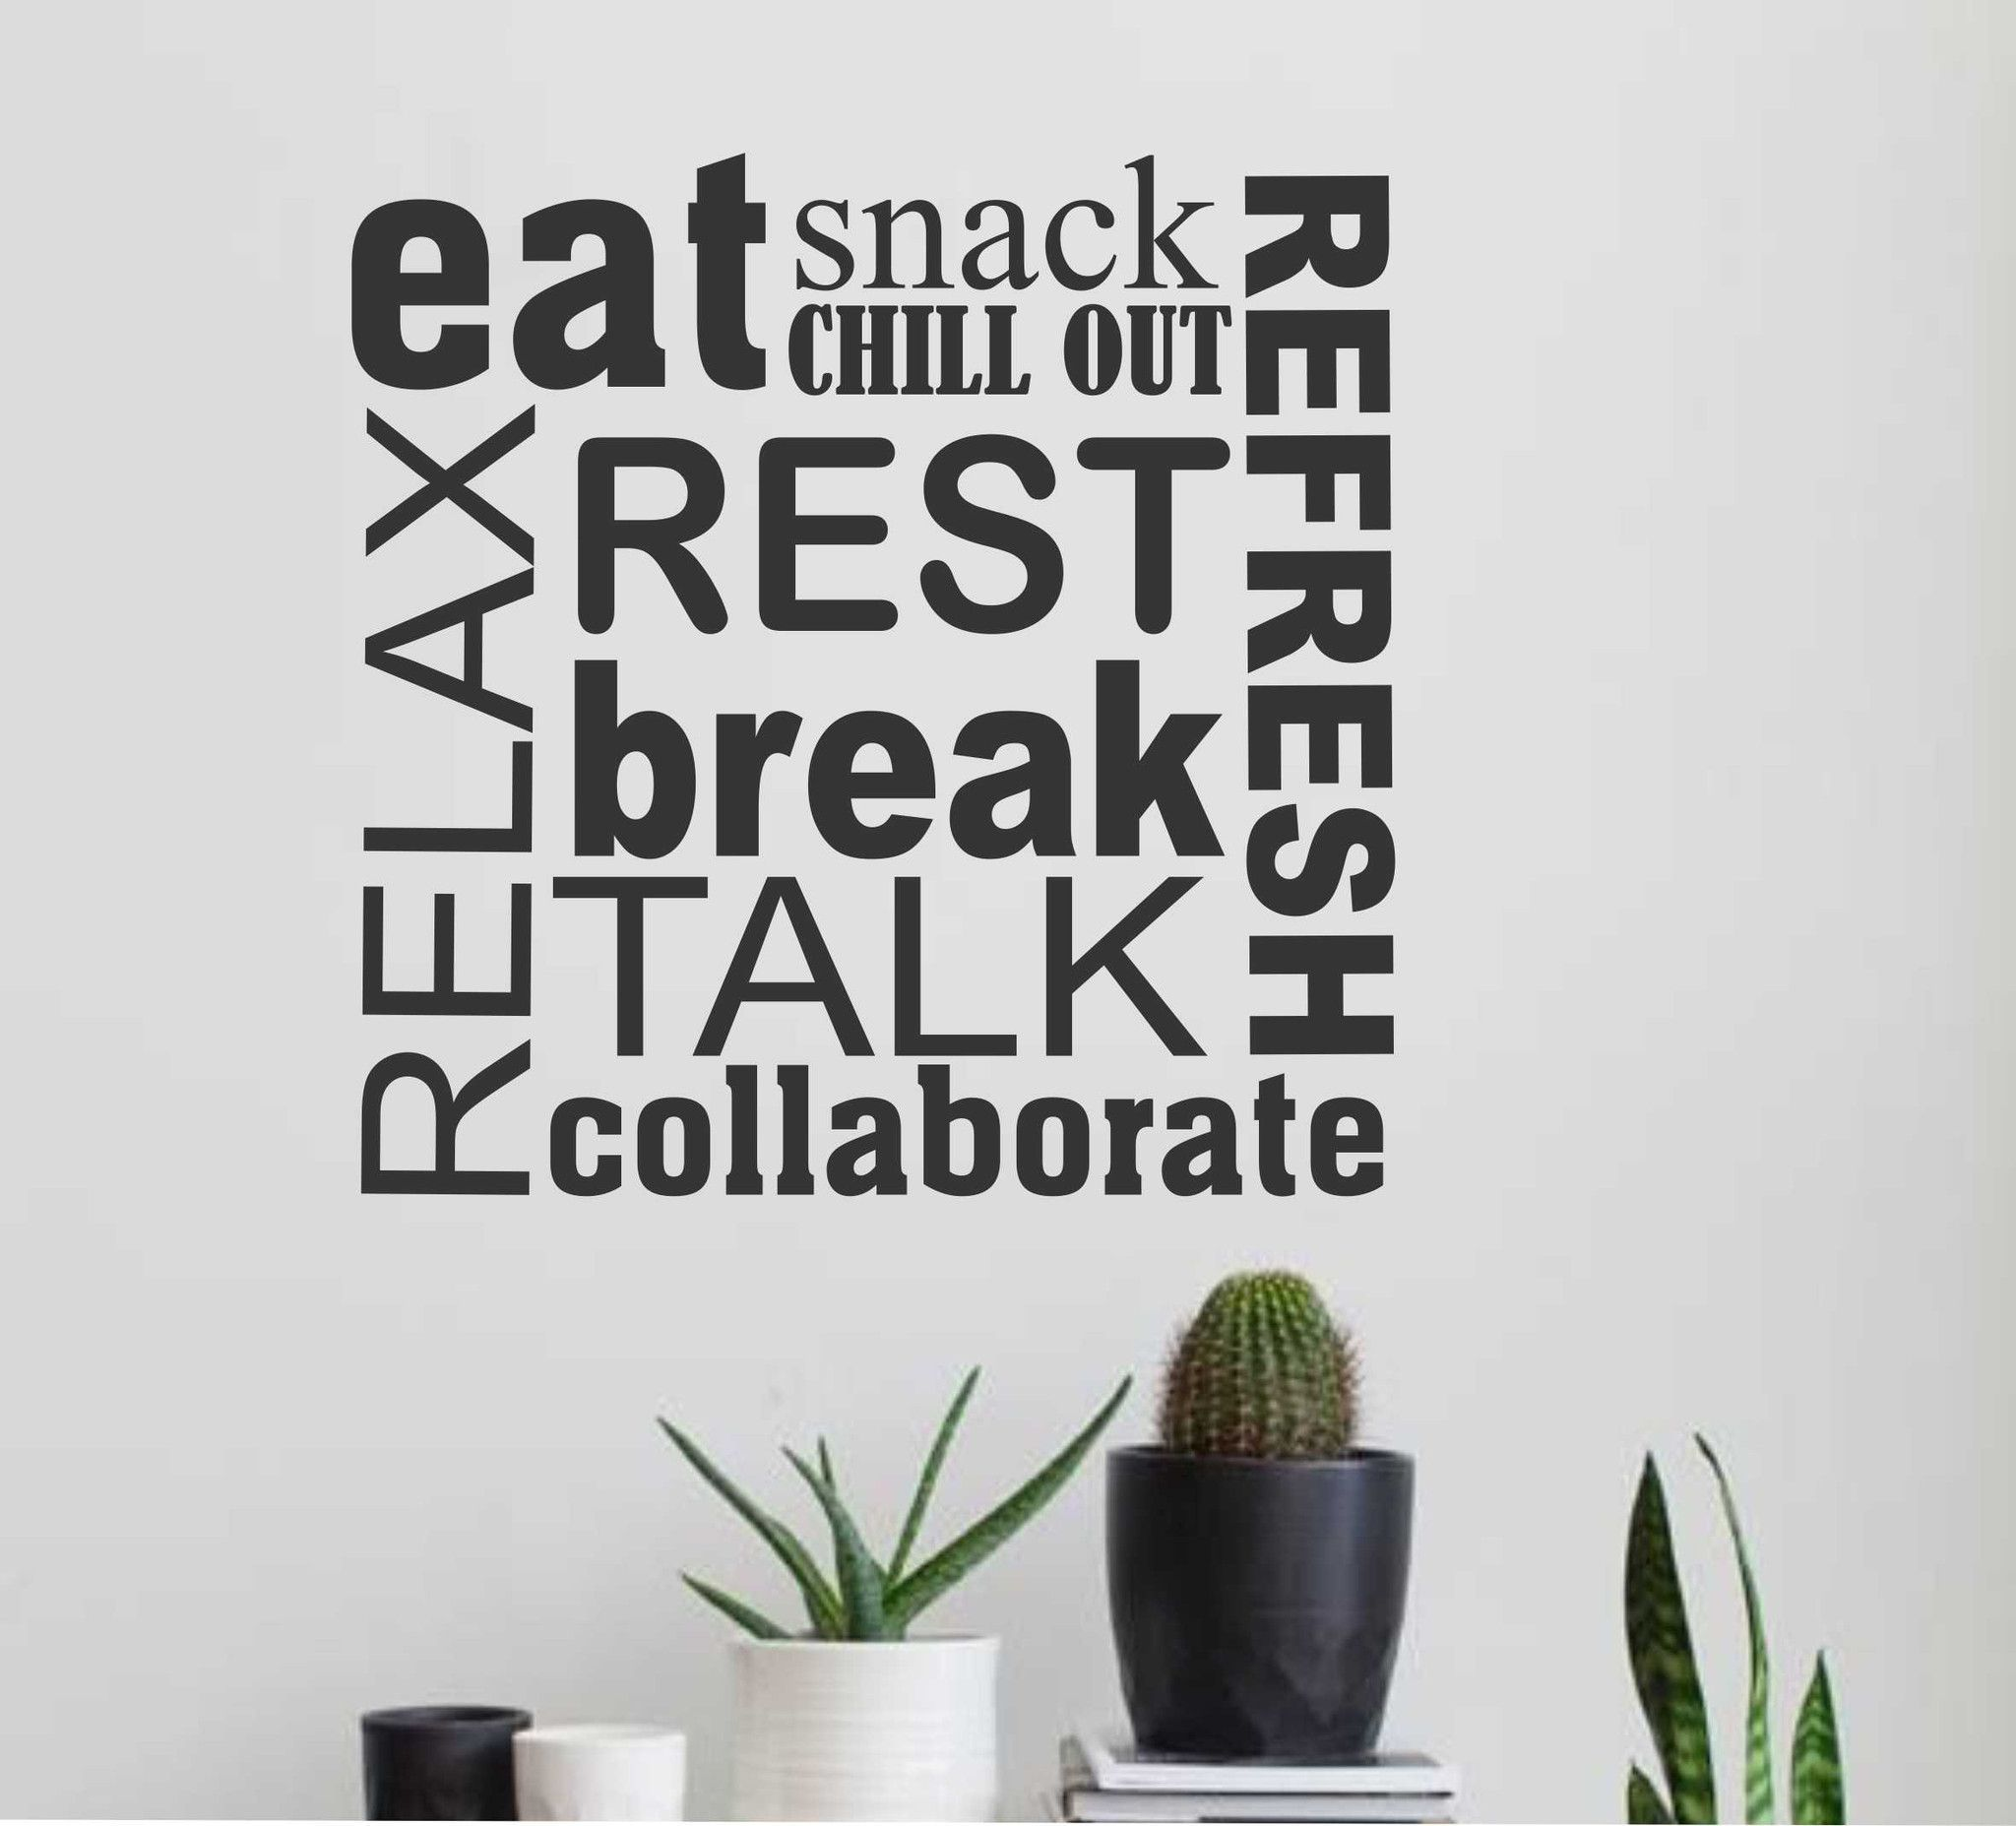 Break Room Word Collage Wall Lettering Vinyl Office Decals - Custom vinyl lettering for walls